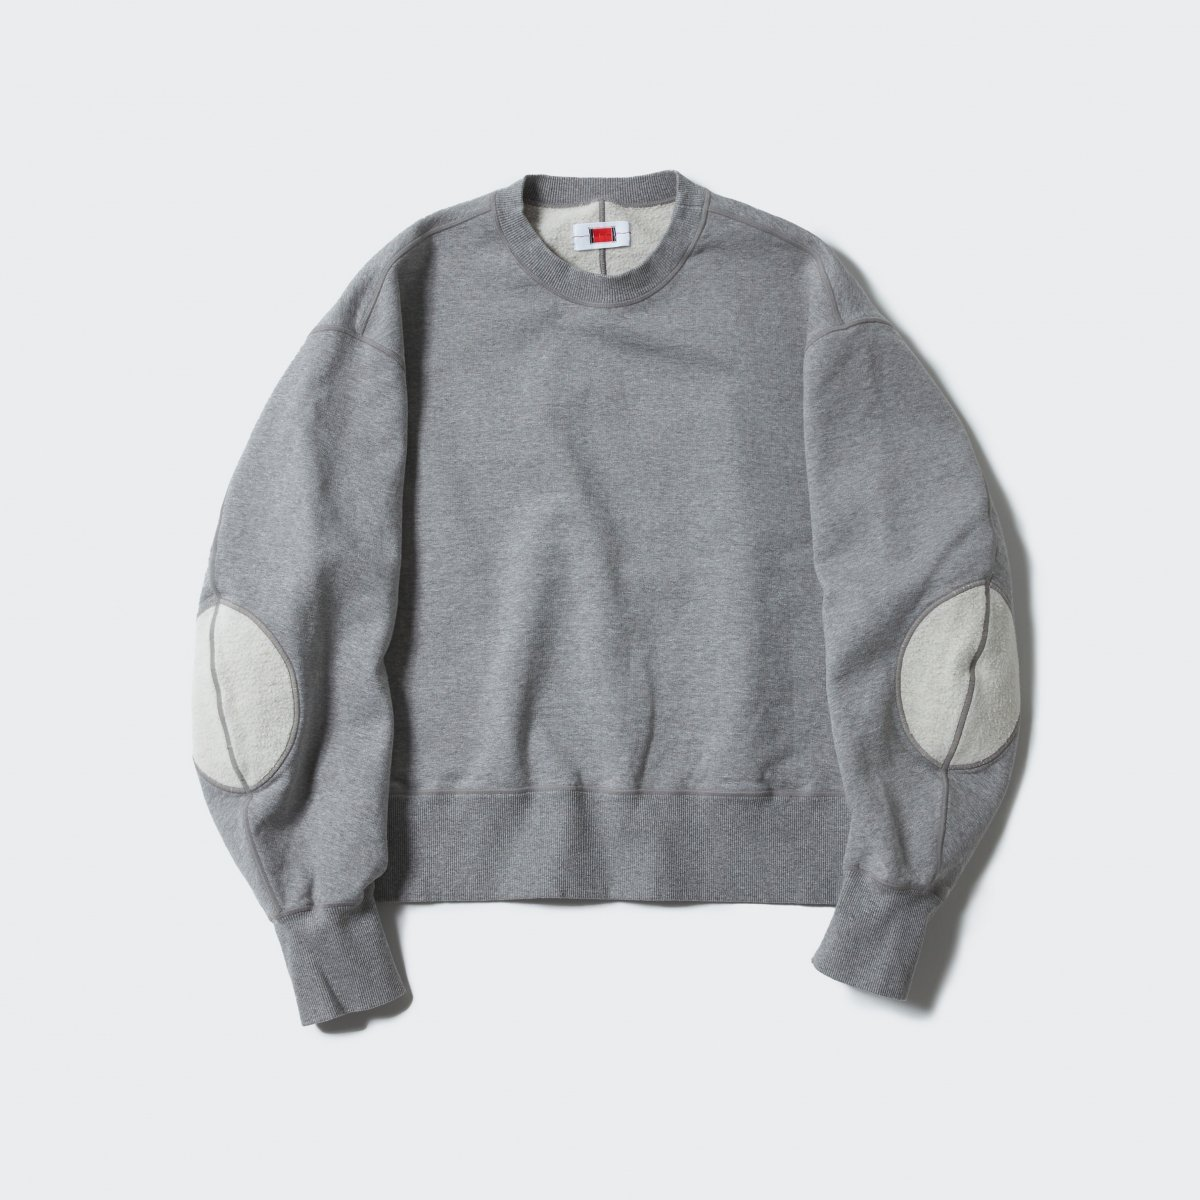 <img class='new_mark_img1' src='https://img.shop-pro.jp/img/new/icons5.gif' style='border:none;display:inline;margin:0px;padding:0px;width:auto;' />【2021AW】MILSPEC CREW | GREY